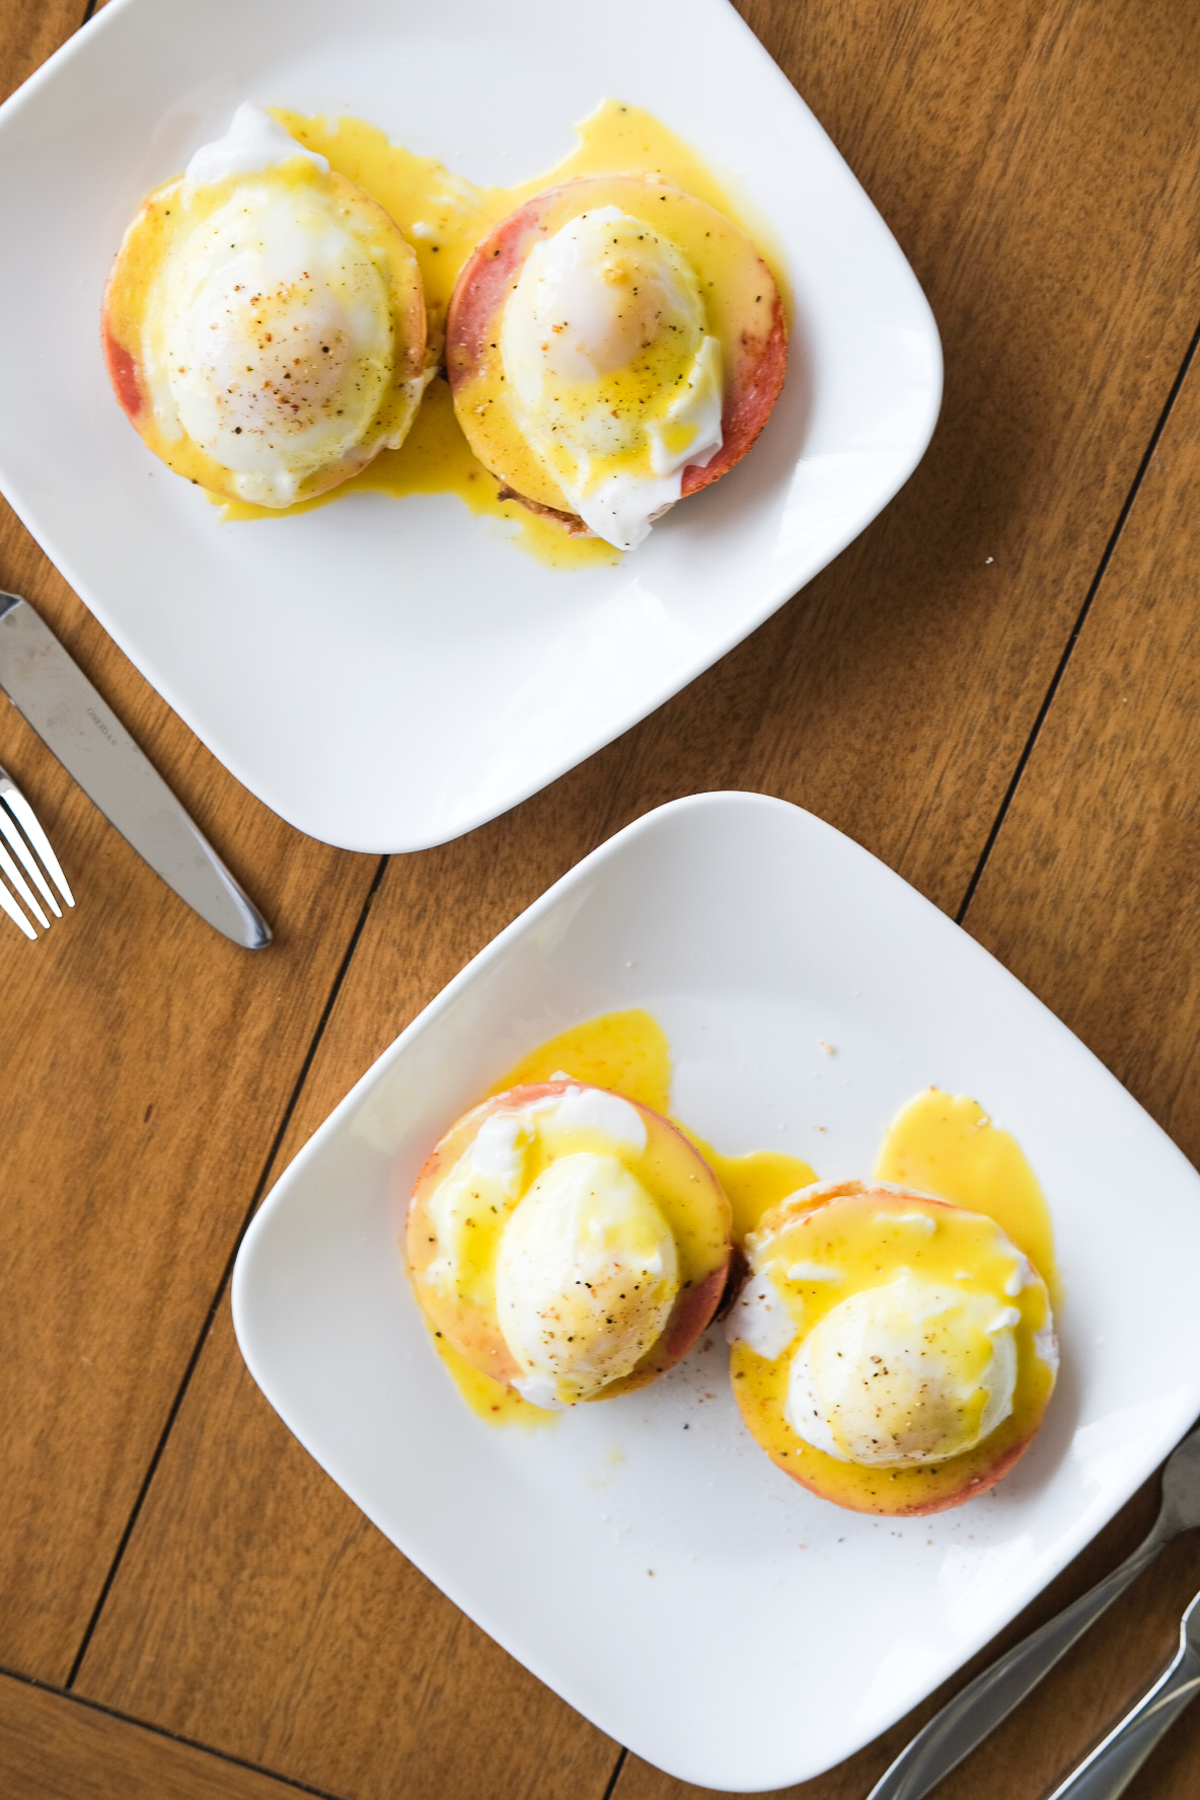 eggs benedict ready to eat for breakfast